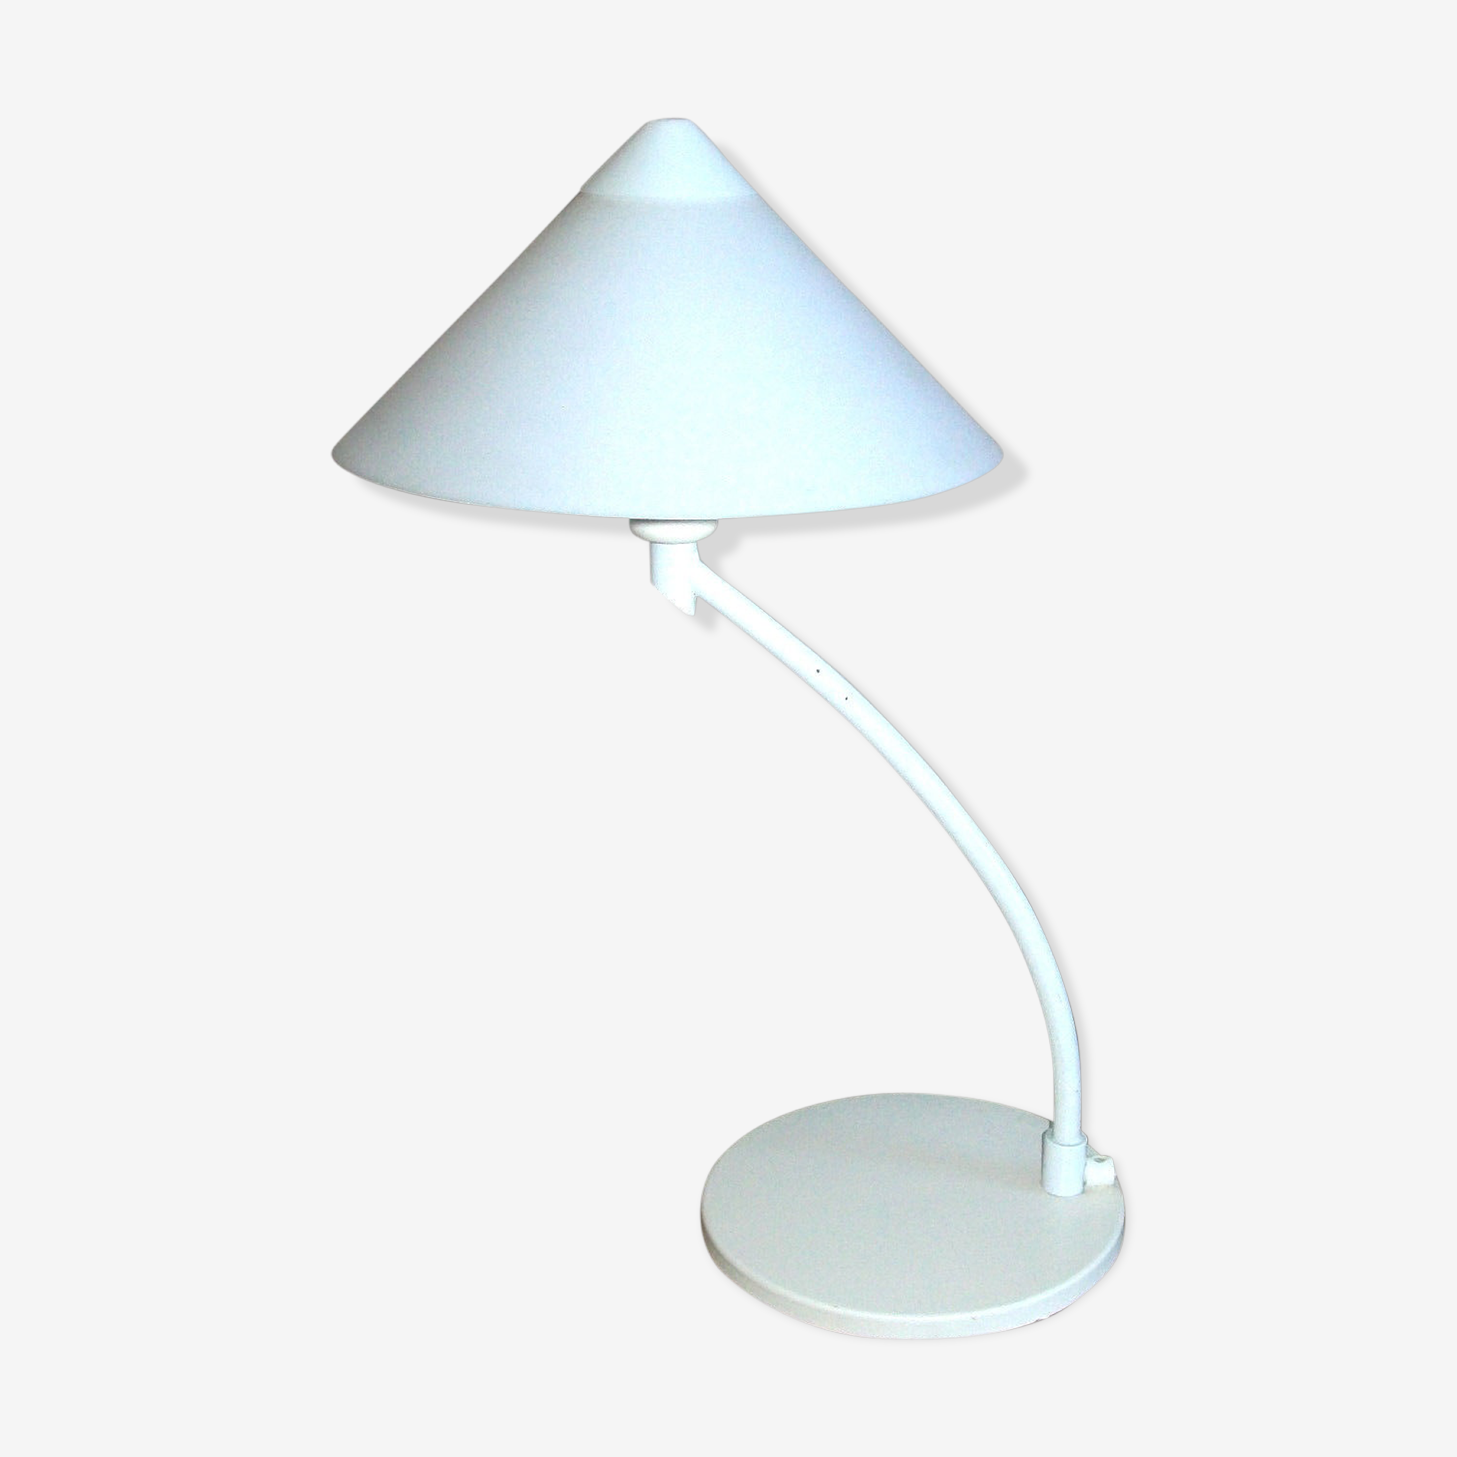 Old table lamp Aluminor